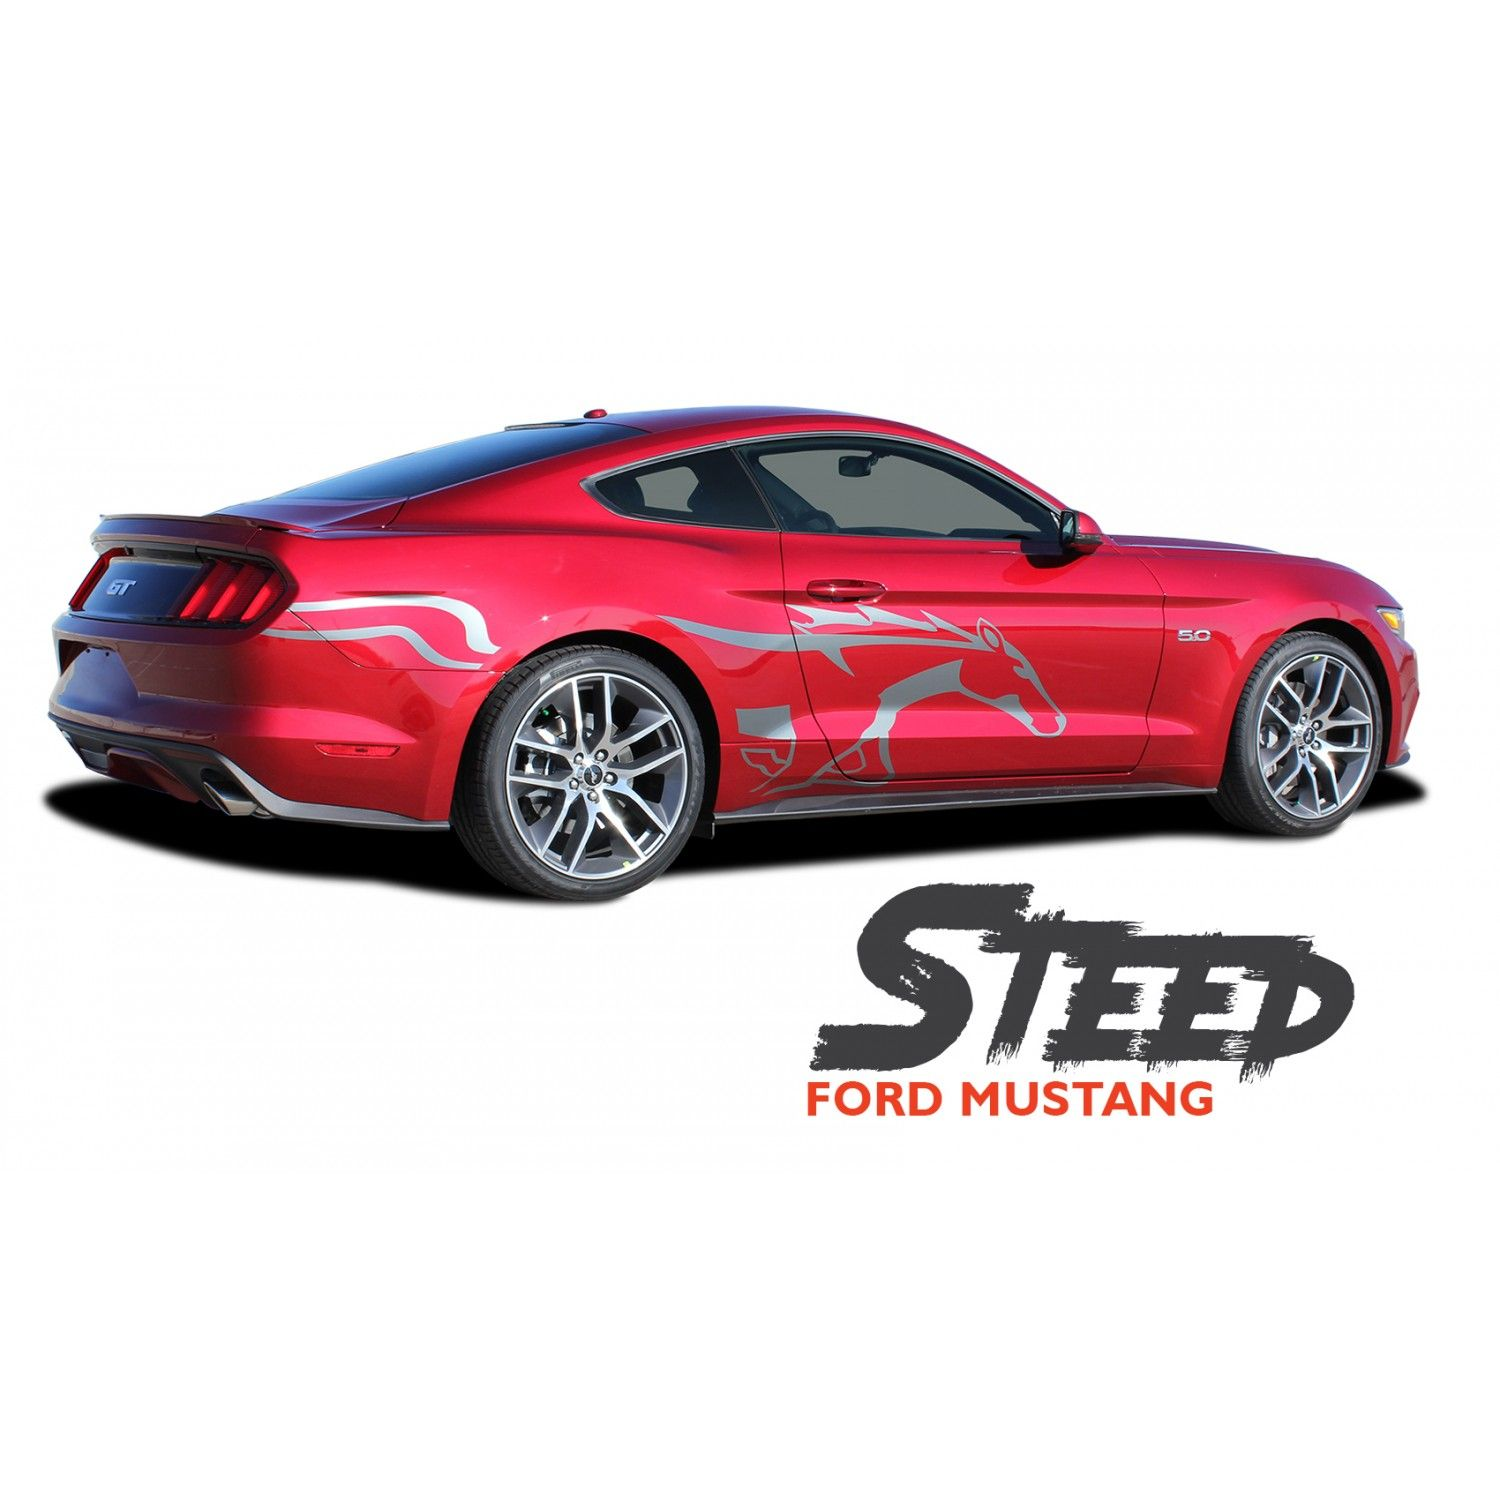 Ford Mustang Steed Pony Horse Side Door Body Vinyl Graphic Decals Stripes Kit For 2015 2016 2017 Stripe Kit Ford Mustang Vinyl For Cars [ 1500 x 1500 Pixel ]